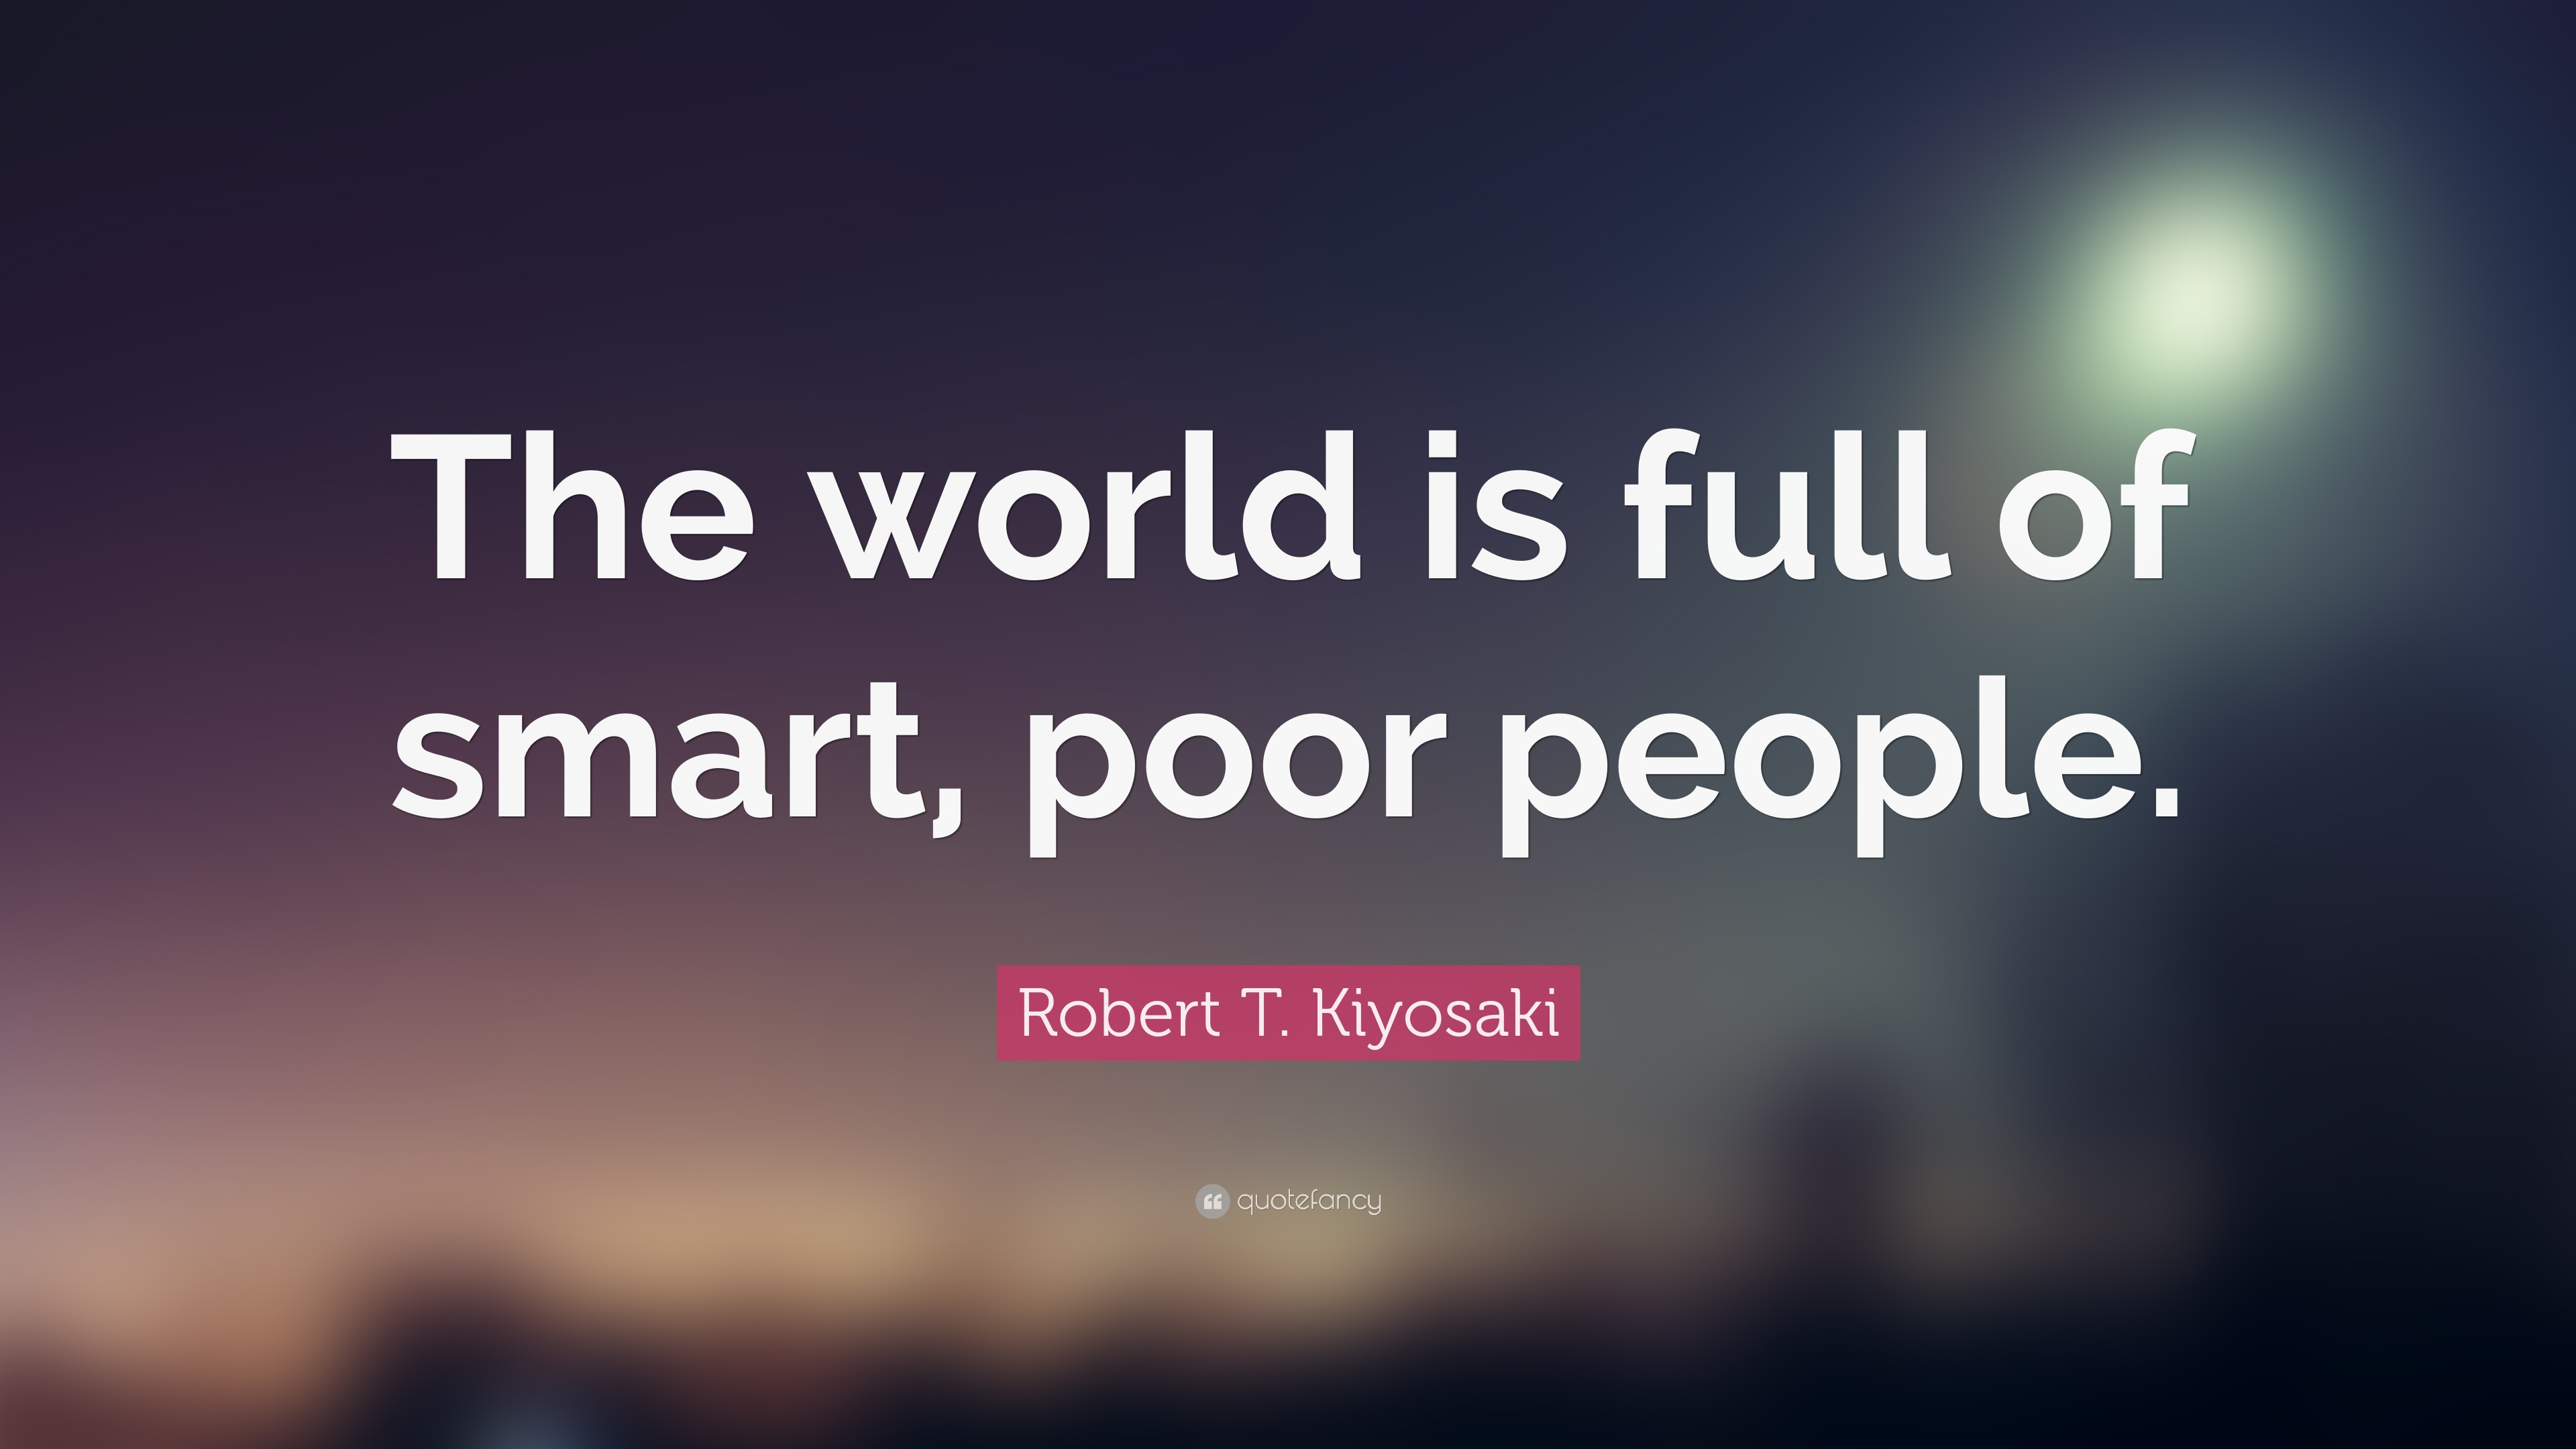 Robert T Kiyosaki Quote The World Is Full Of Smart Poor People 12 Wallpapers Quotefancy